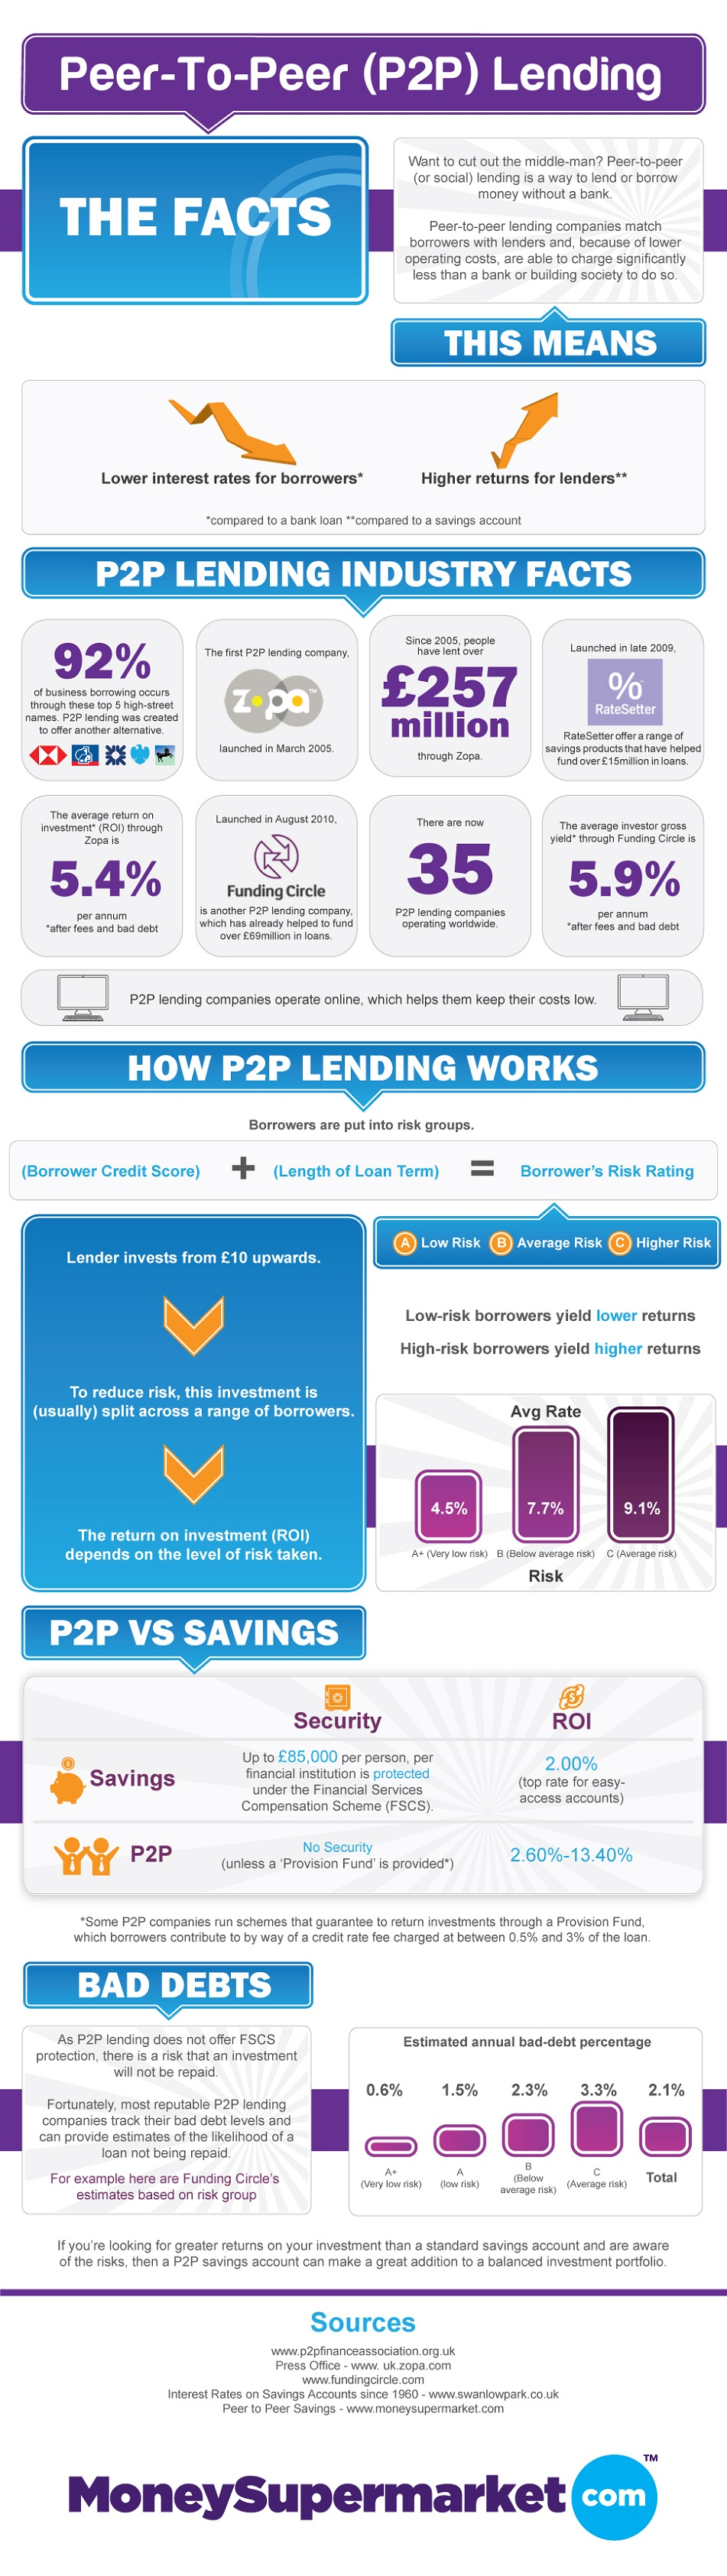 P2P Lending Benefits-Infographic